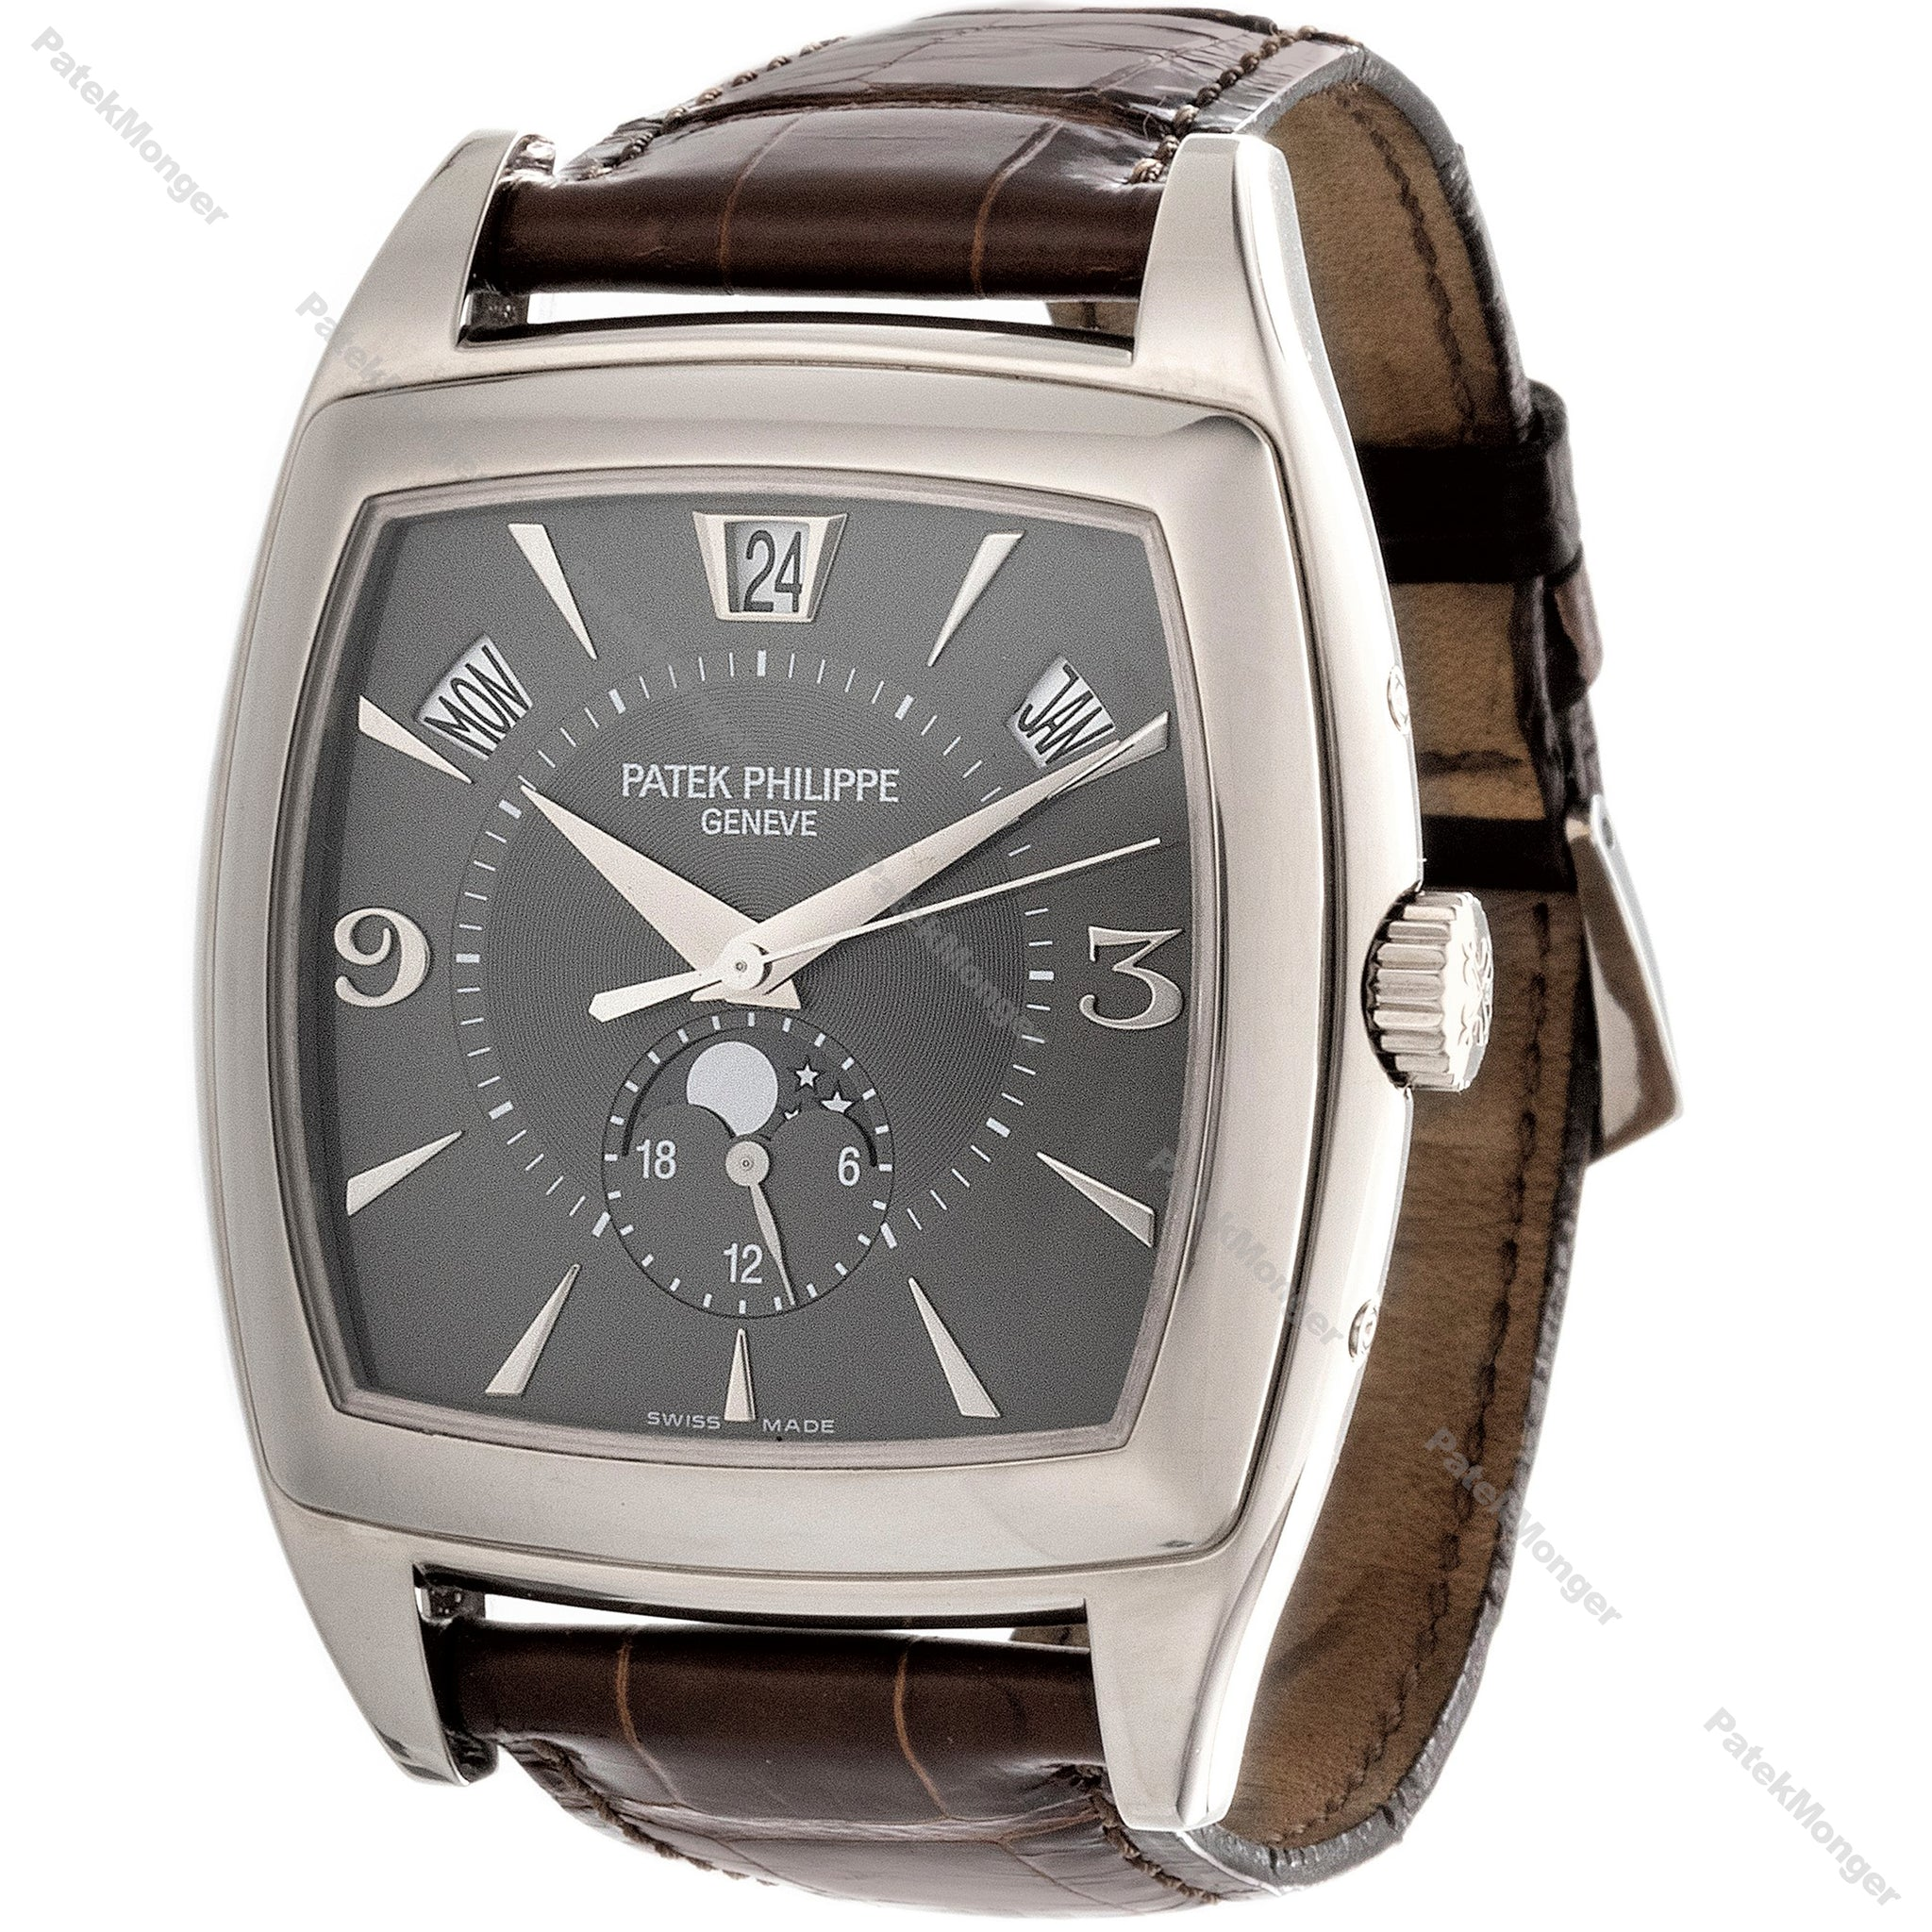 Patek Philippe 5135G-010 Gondolo Watch